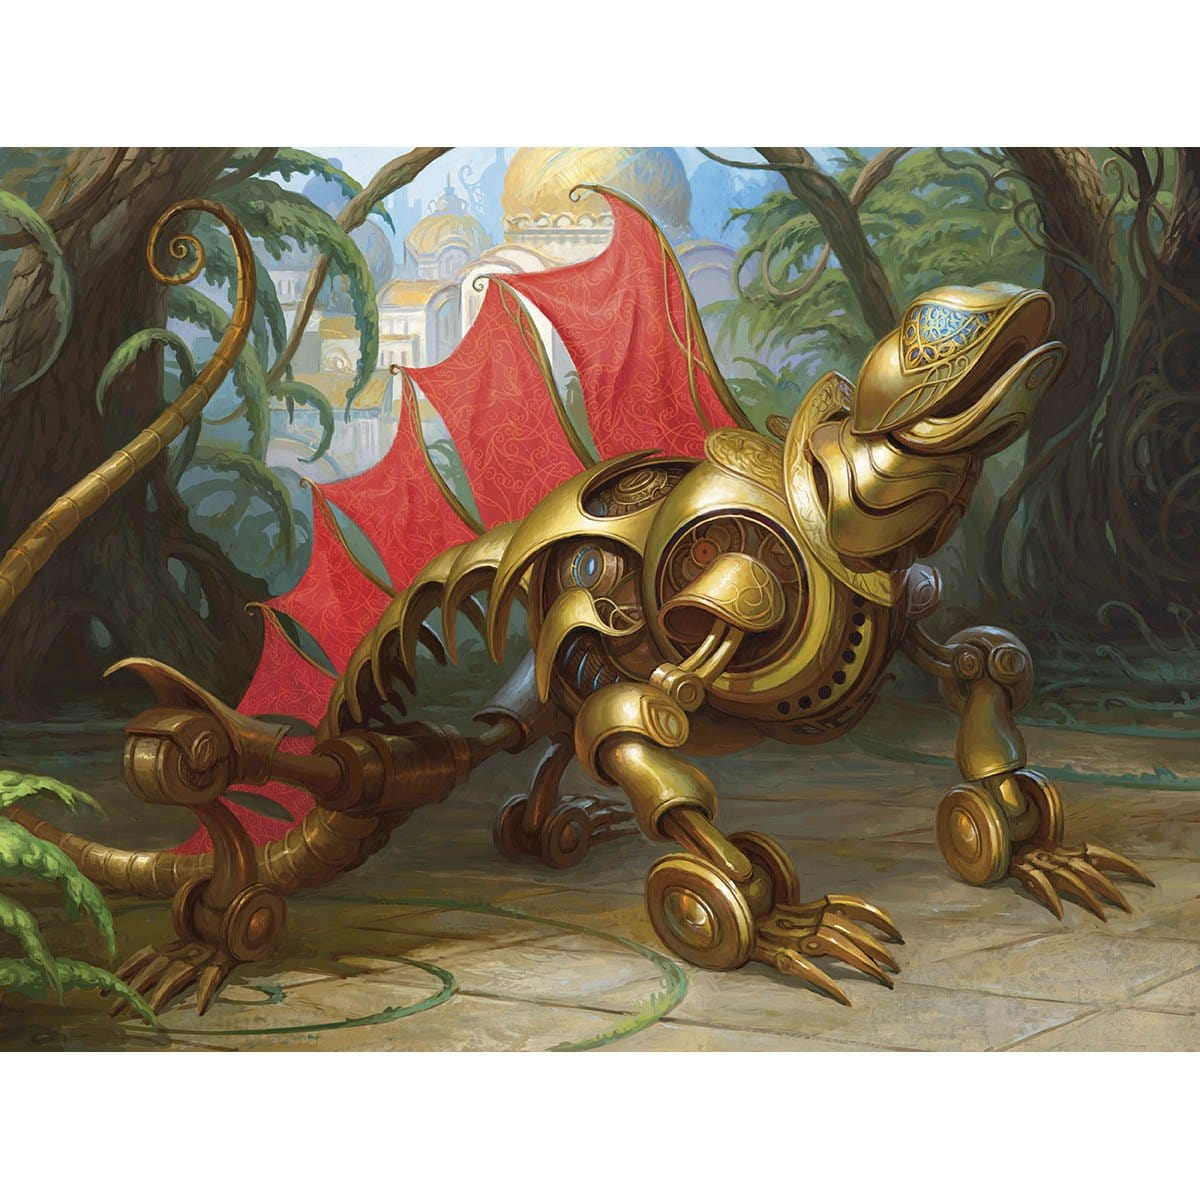 Weldfast Monitor Print - Print - Original Magic Art - Accessories for Magic the Gathering and other card games